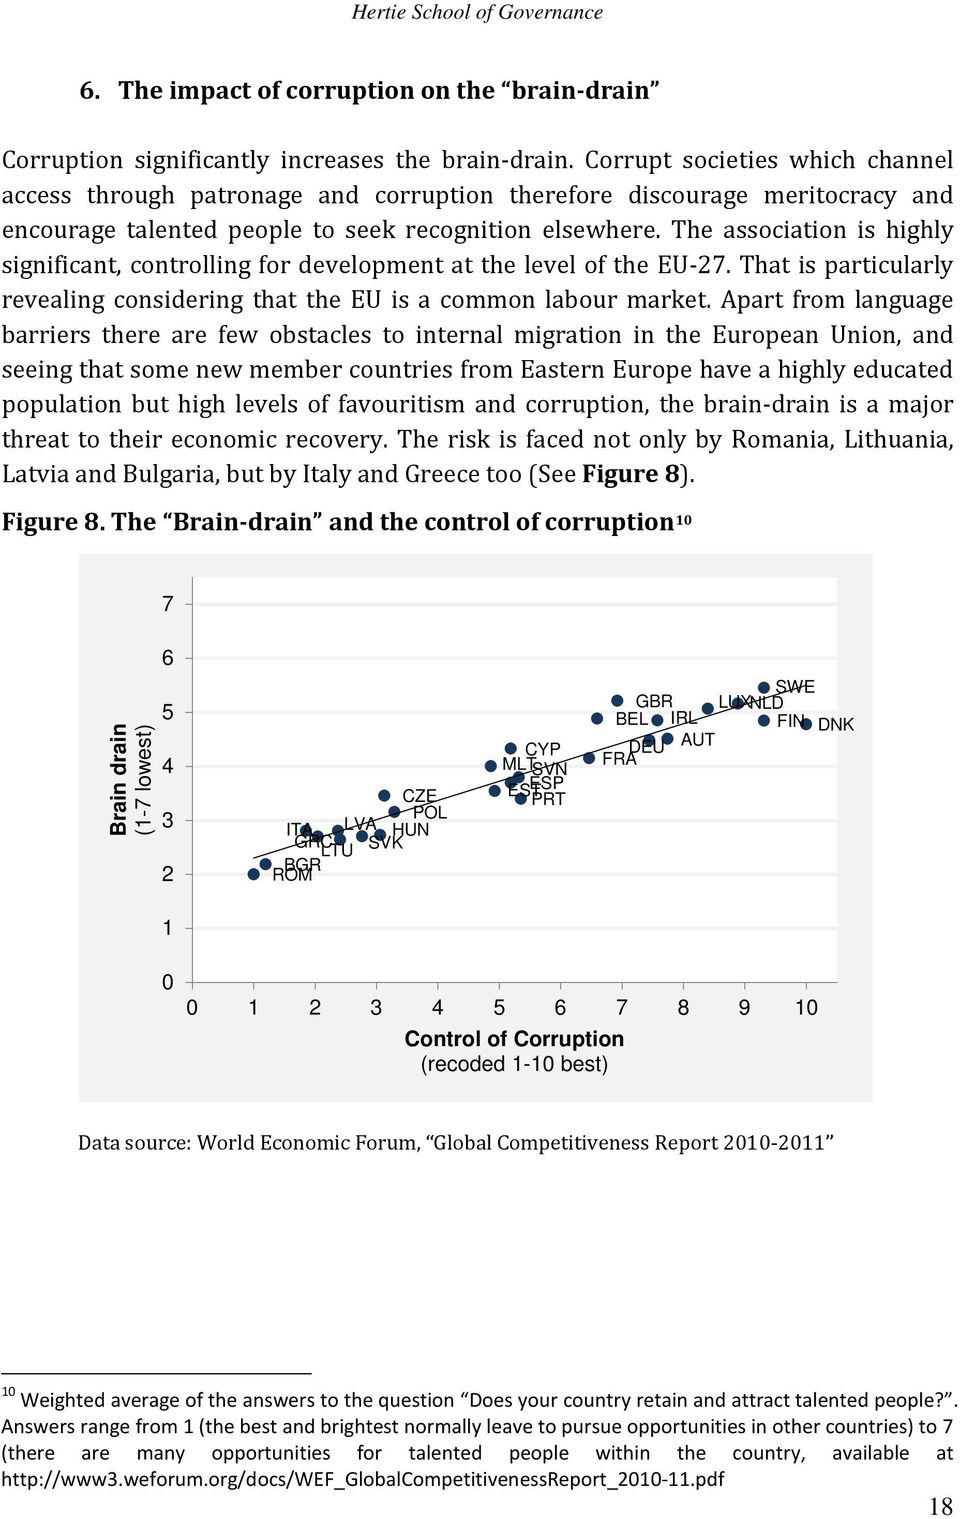 The association is highly significant, controlling for development at the level of the EU-27. That is particularly revealing considering that the EU is a common labour market.